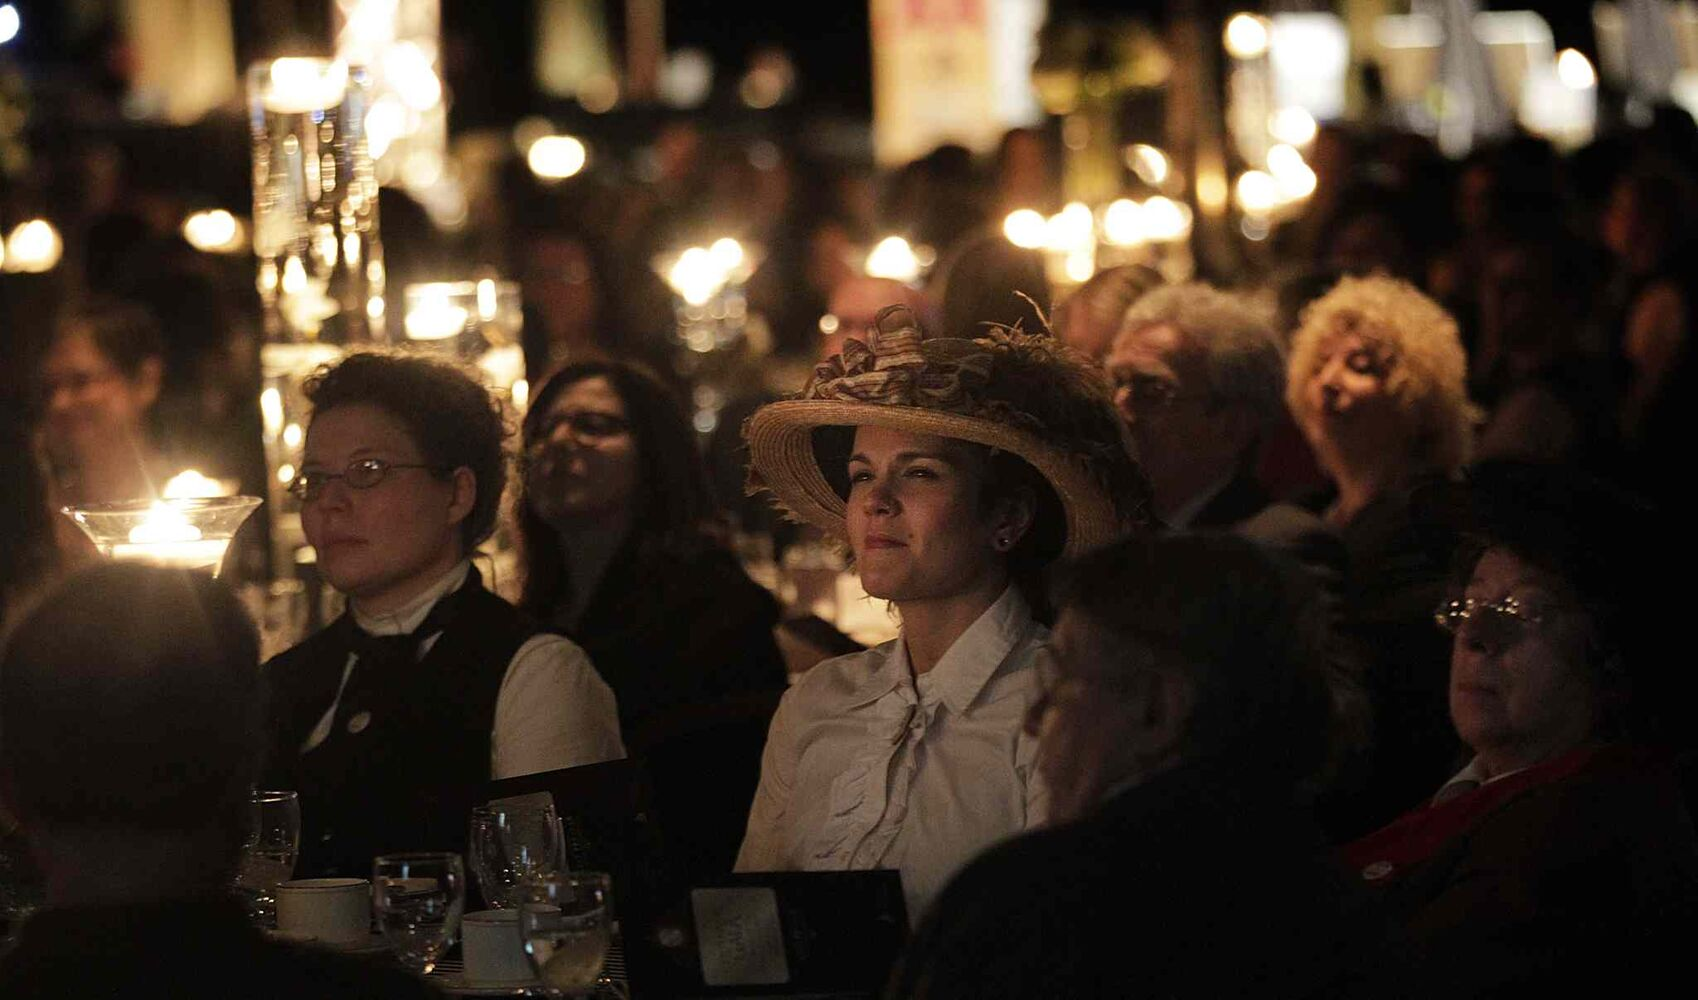 Dressed in period finery, Naomi Osask (centre) joined women from across Manitoba at the Centennial Women's Gala. (Phil Hossack / Winnipeg Free Press)